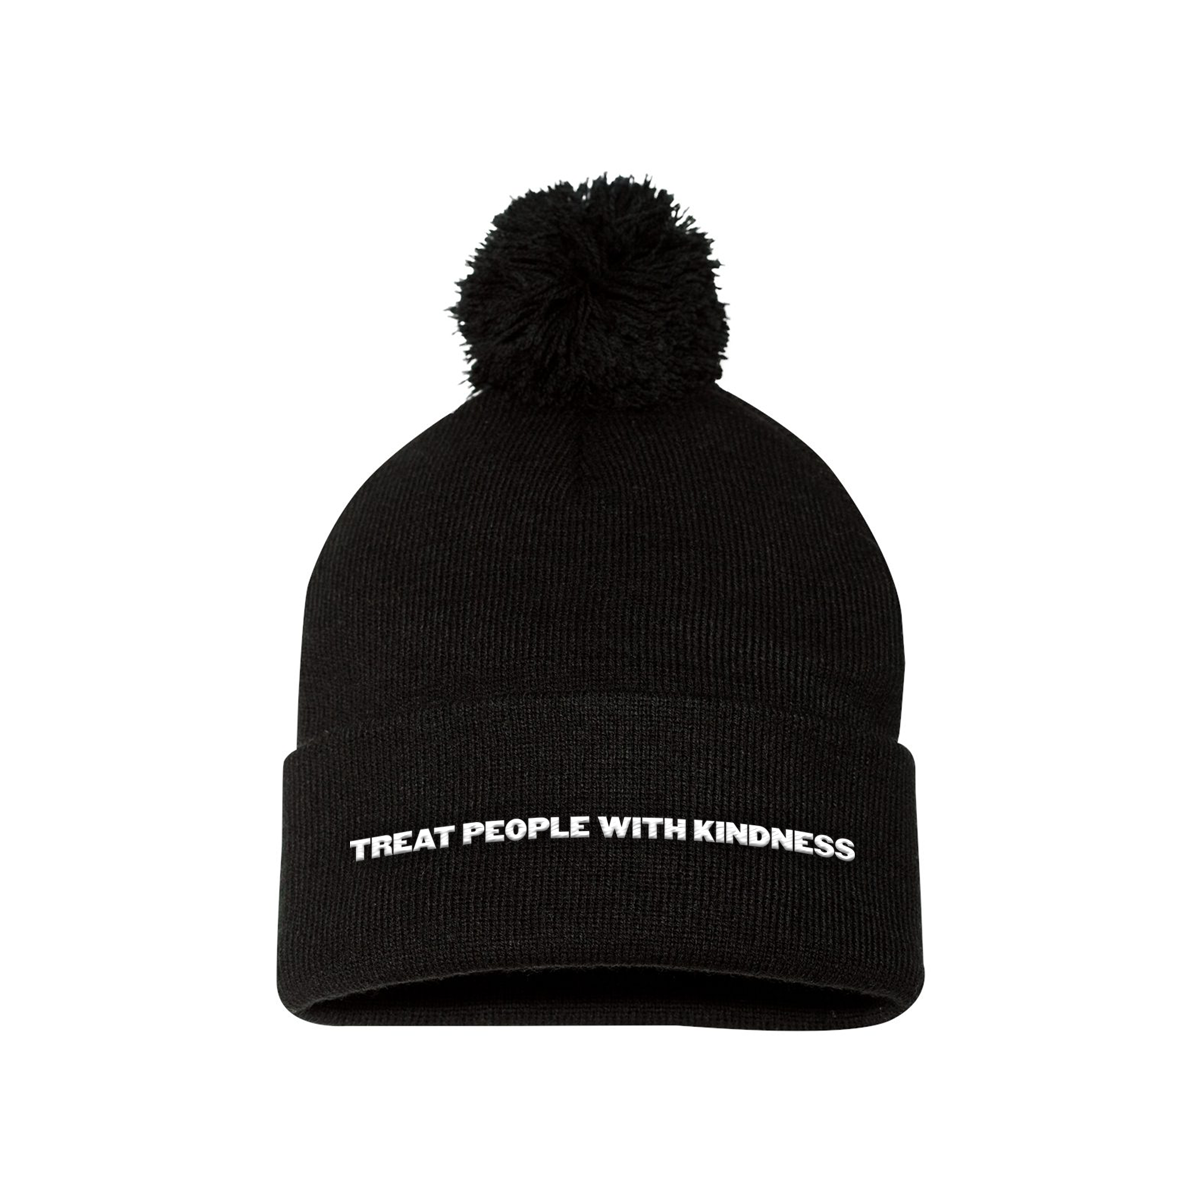 Treat People With Kindness Pom Beanie + Digital Download